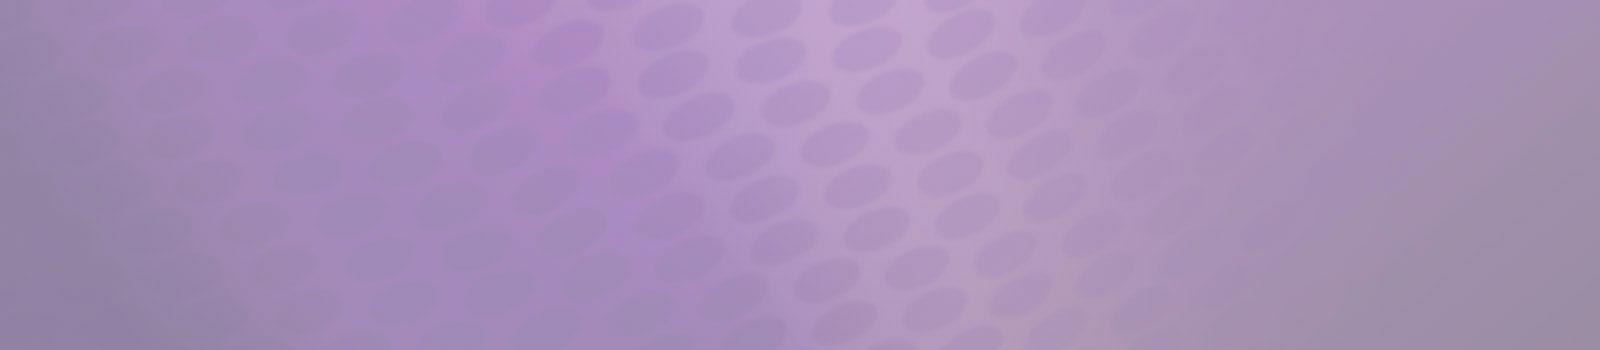 background_brightcircles3